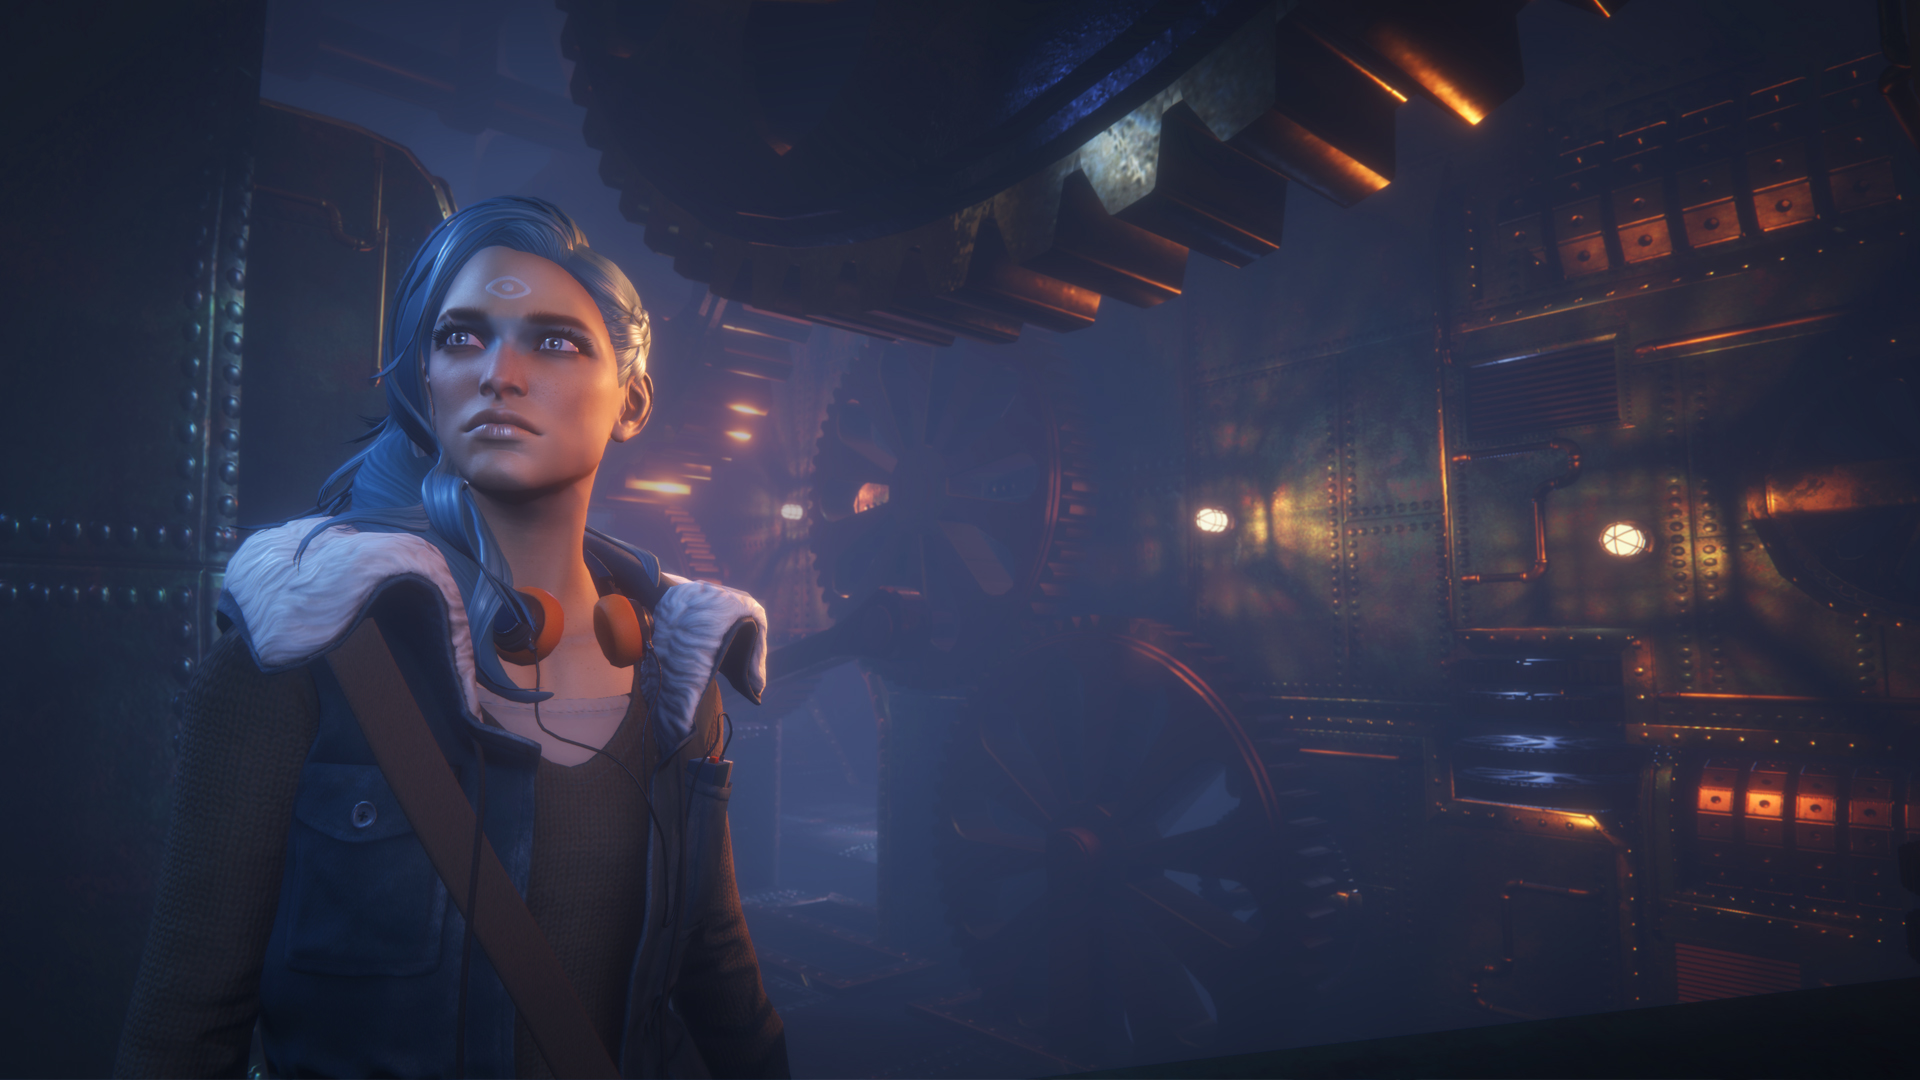 Dreamfall Chapters Gets New Video That Introduces